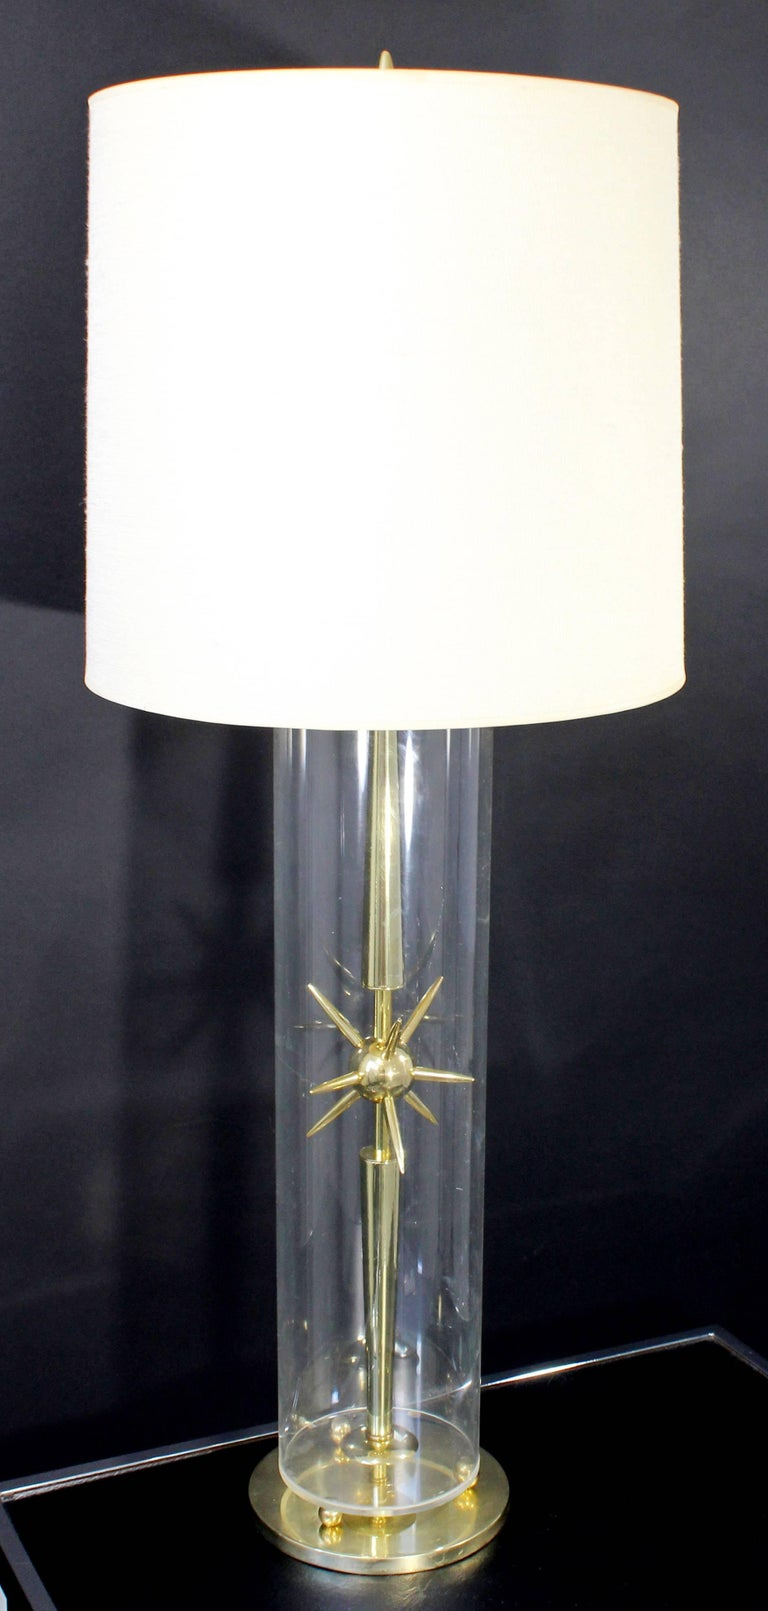 American Mid-Century Modern Sputnik Atomic Glass & Brass Table Lamp by Mutual Sunset Co. For Sale